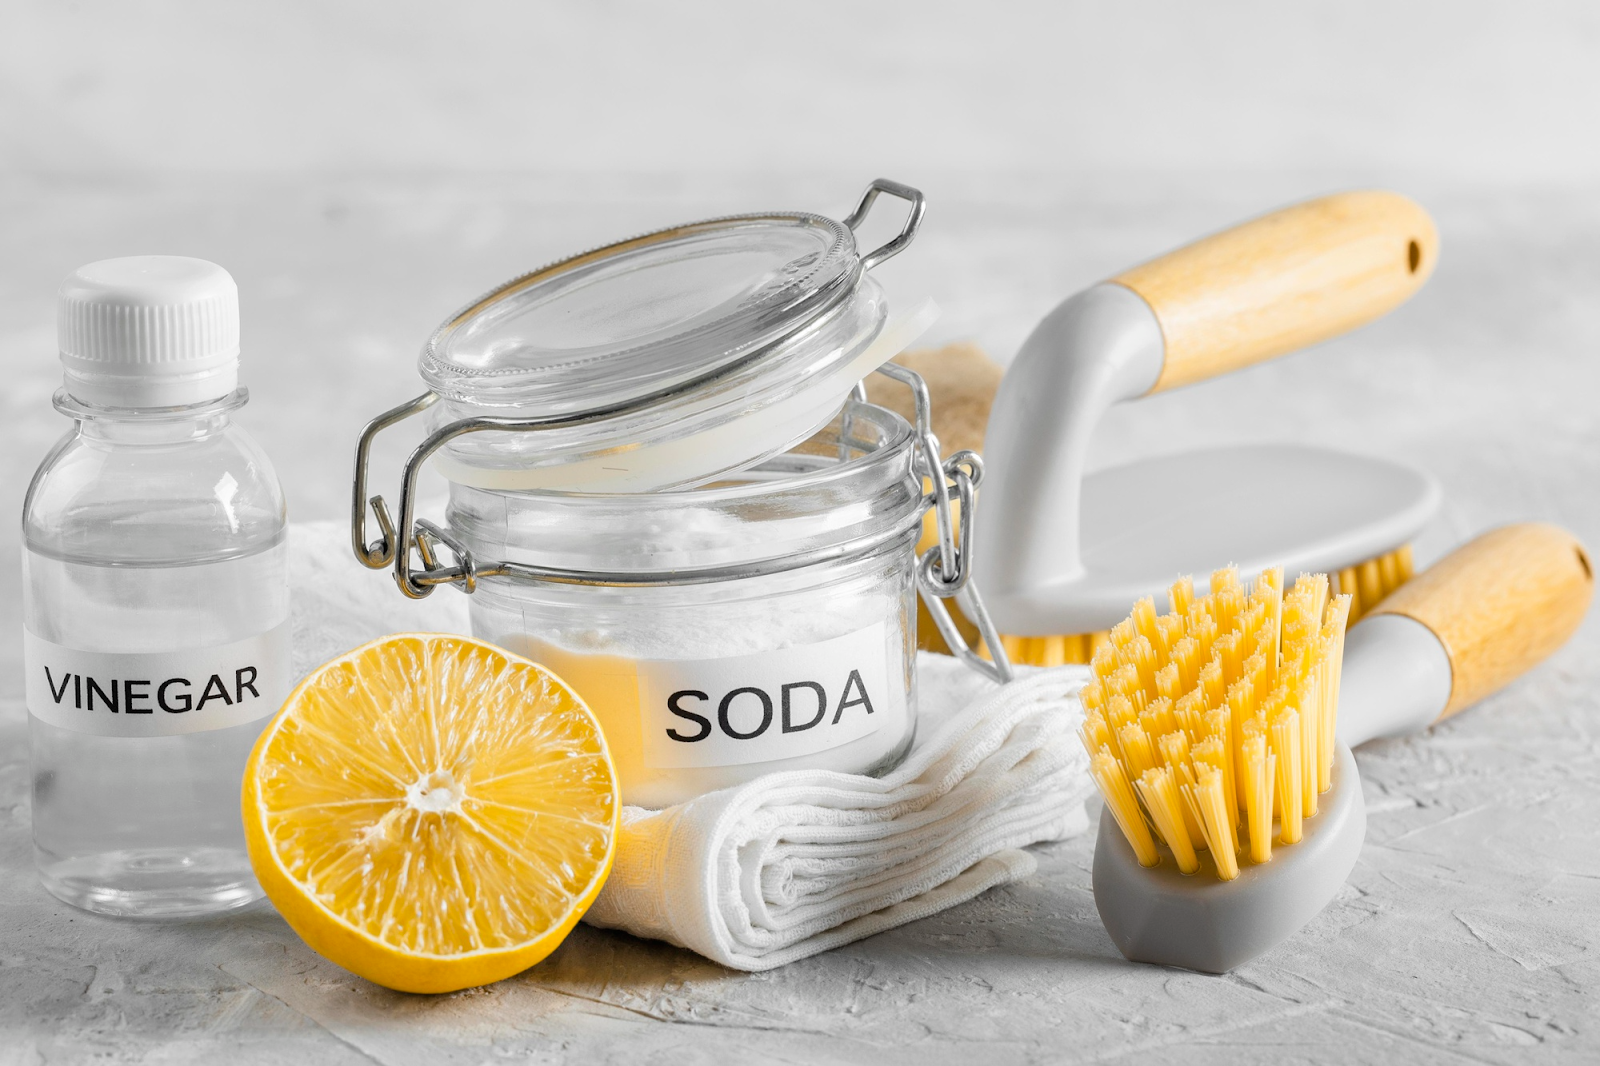 photo of vinegar and baking soda with cleaning tools